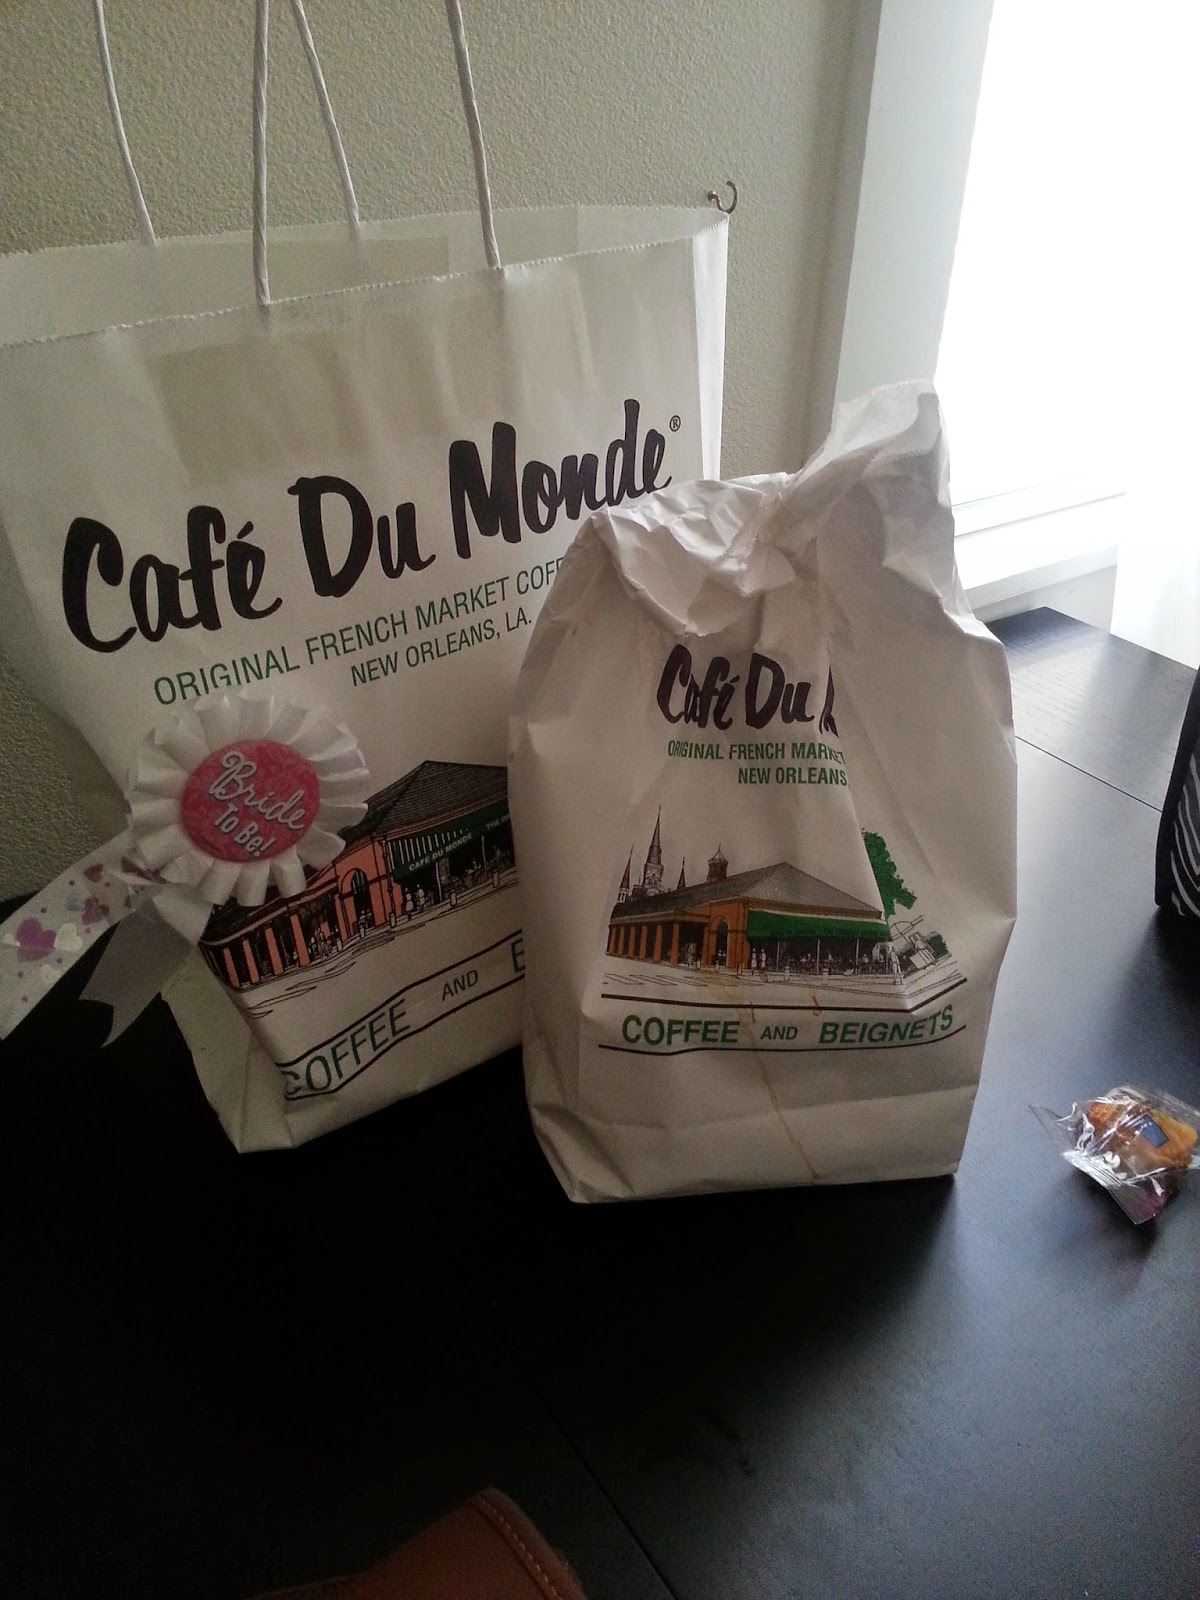 Cafe Du Monde Coffee in bags